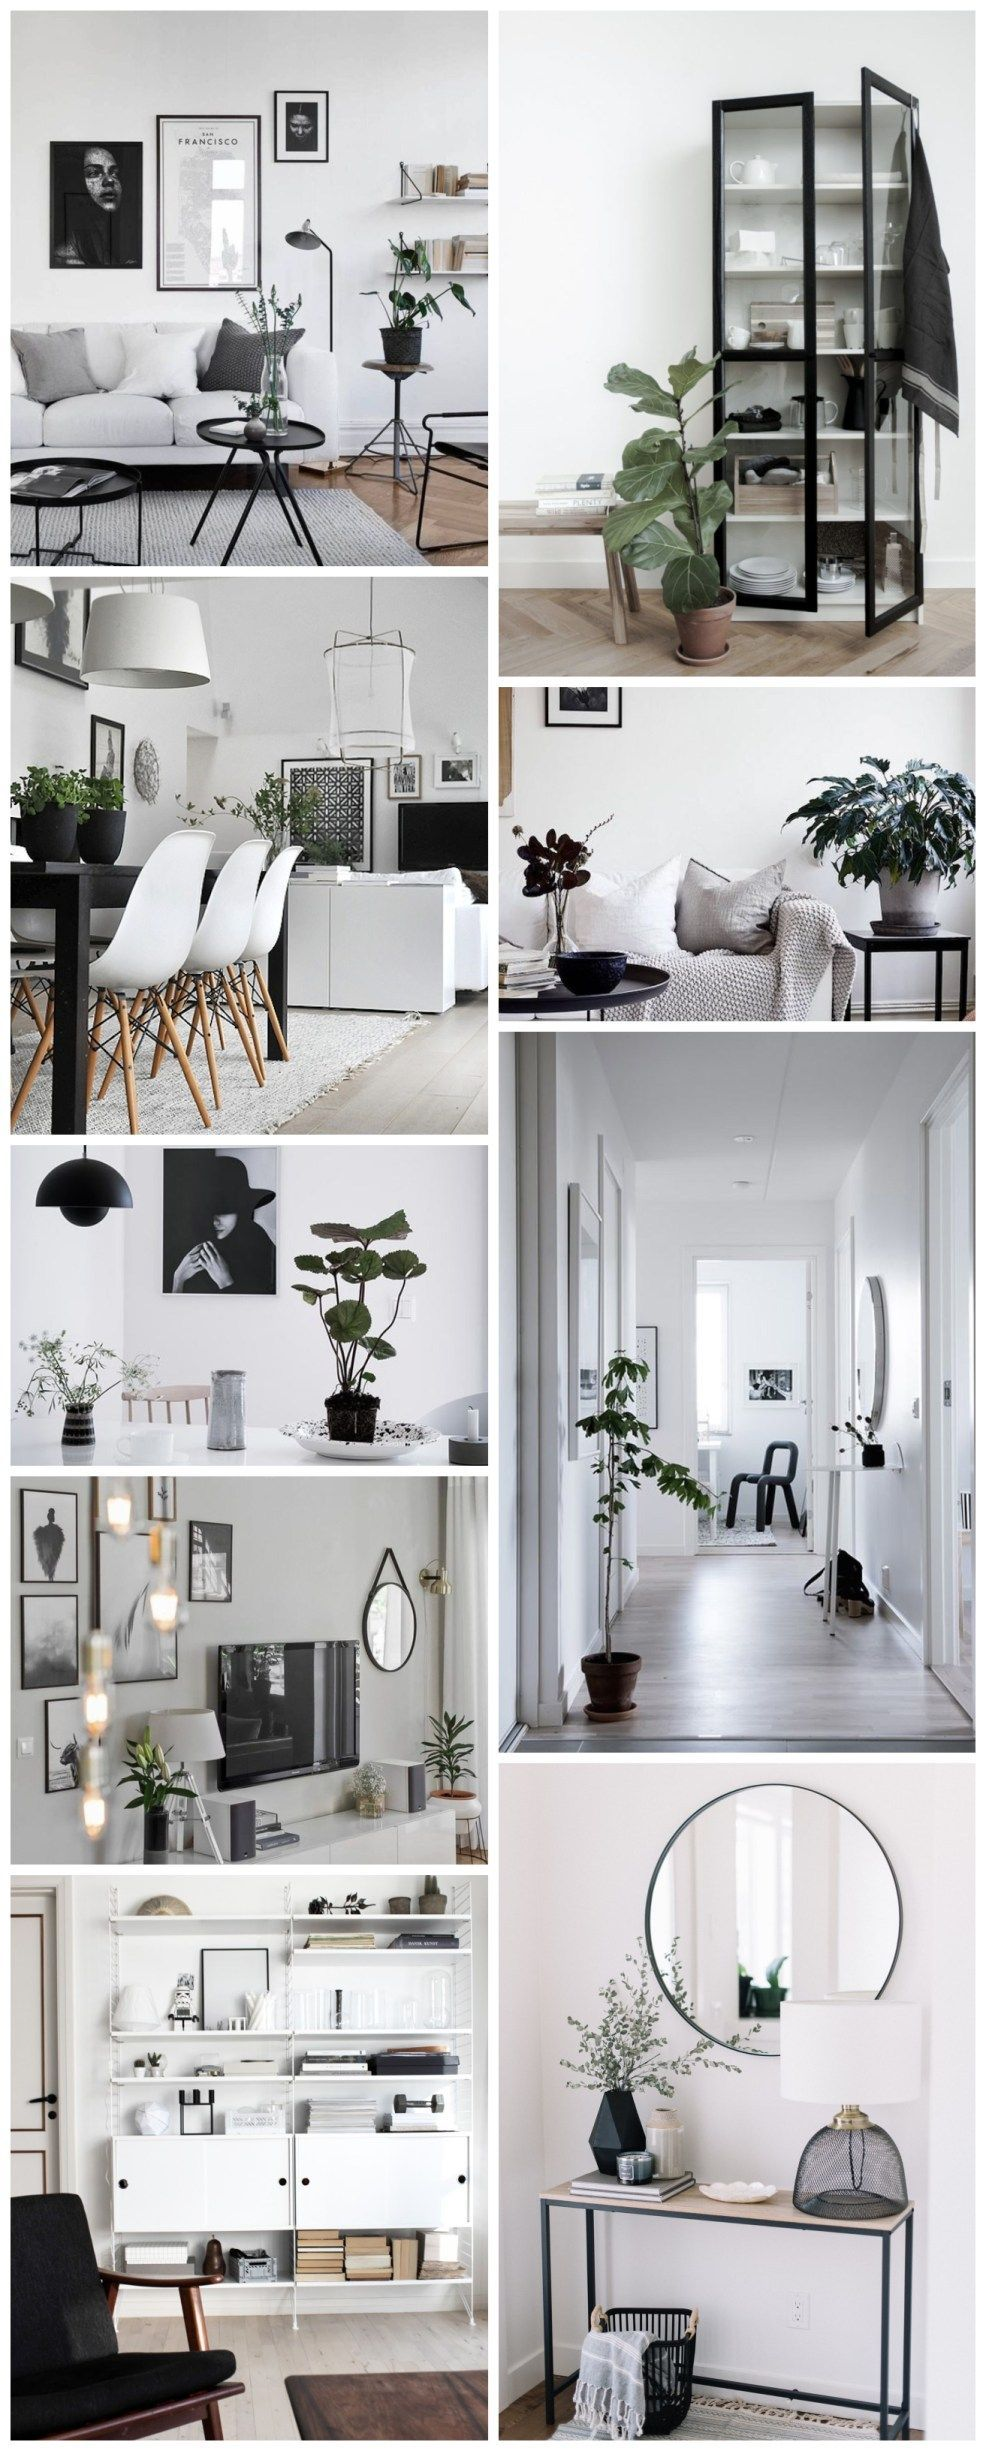 Minimalist Home Redecorating Inspiration images